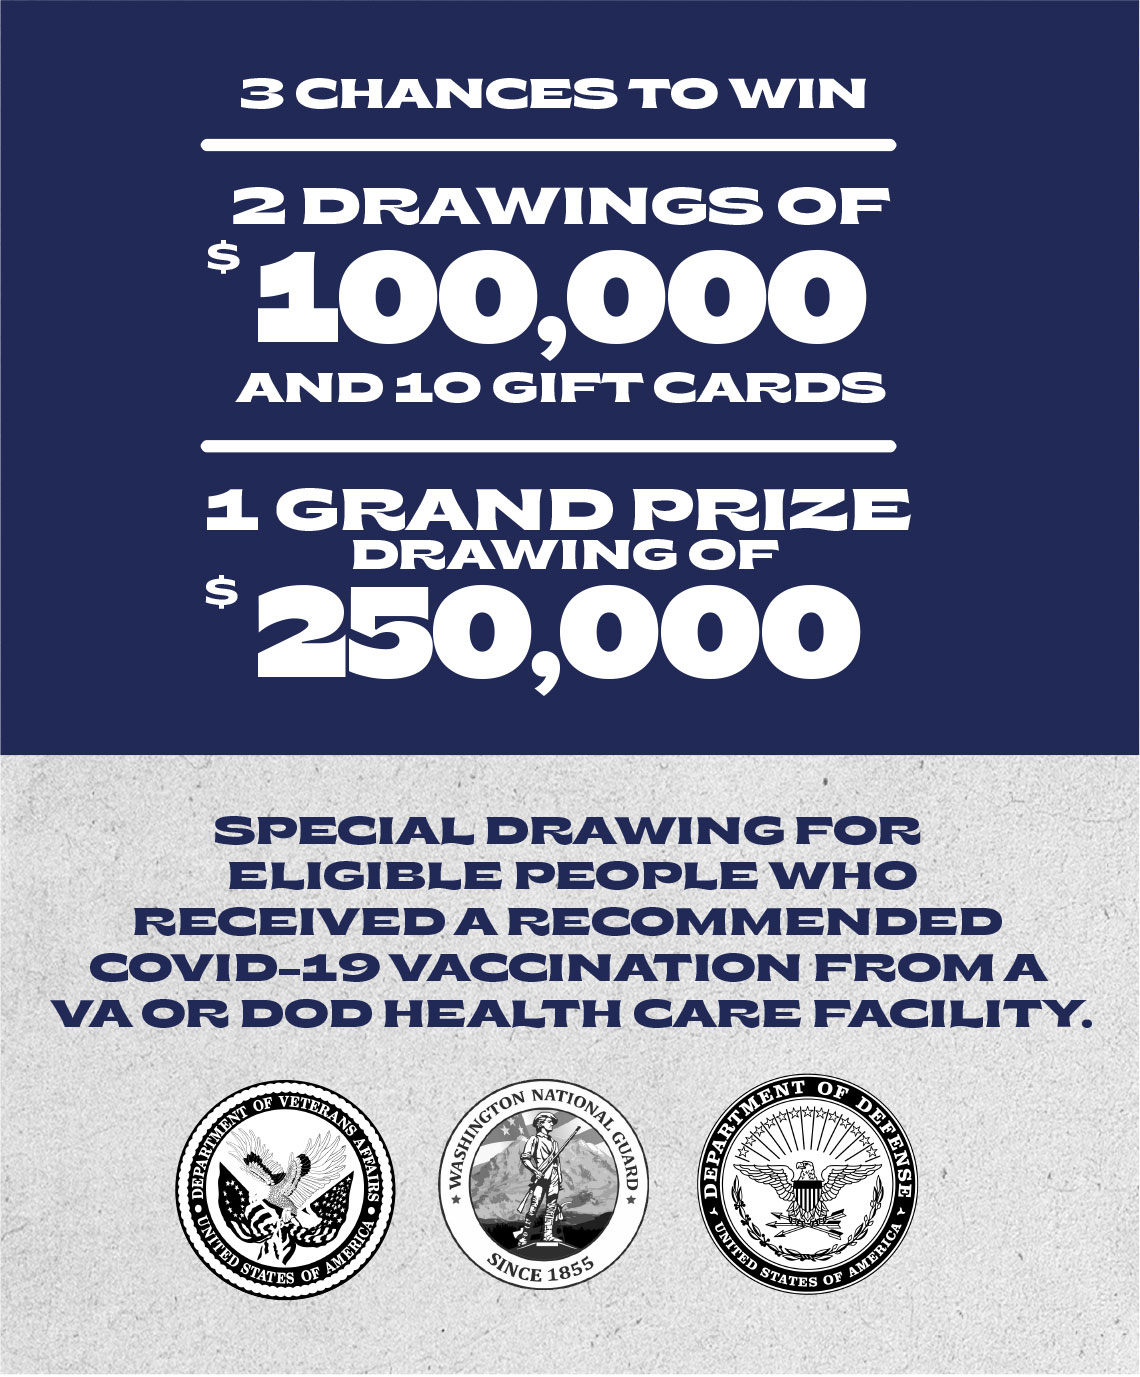 3 chances to win. 2 Drawings of $100,000 and 10 gift cards. 1 Grand Prize drawing of $250,000. Special drawing for eligible people who received a recommended COVID-19 vaccination from a VA or DOD health care facility.